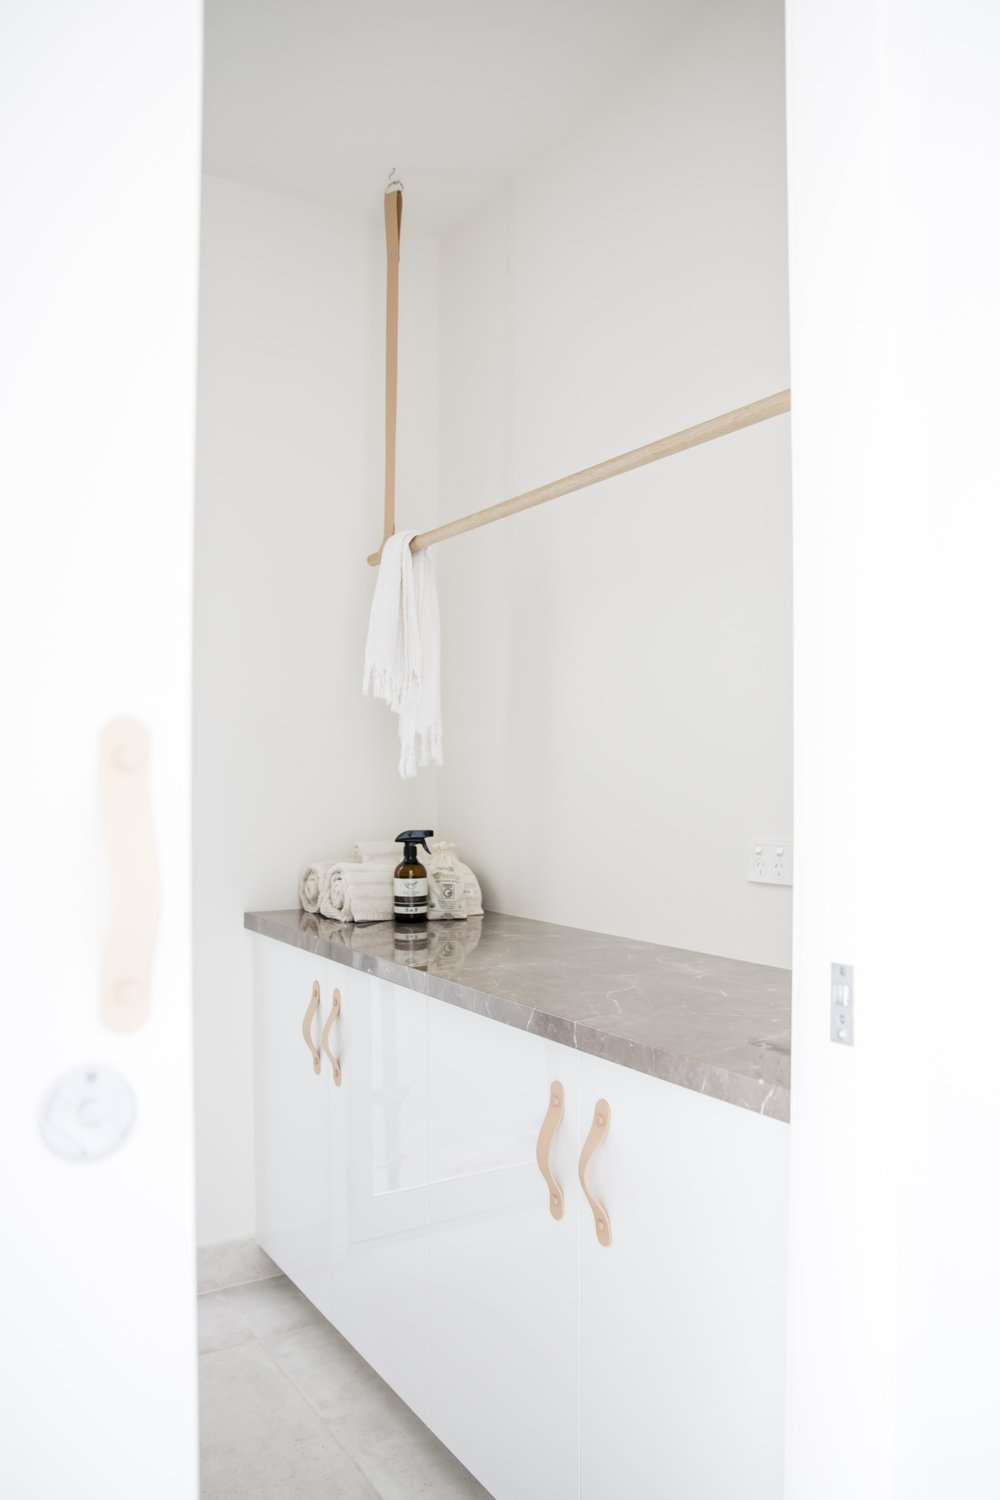 Nude leather and oak rod, hanging from the ceiling, Australian designed product. |  H&G Designs